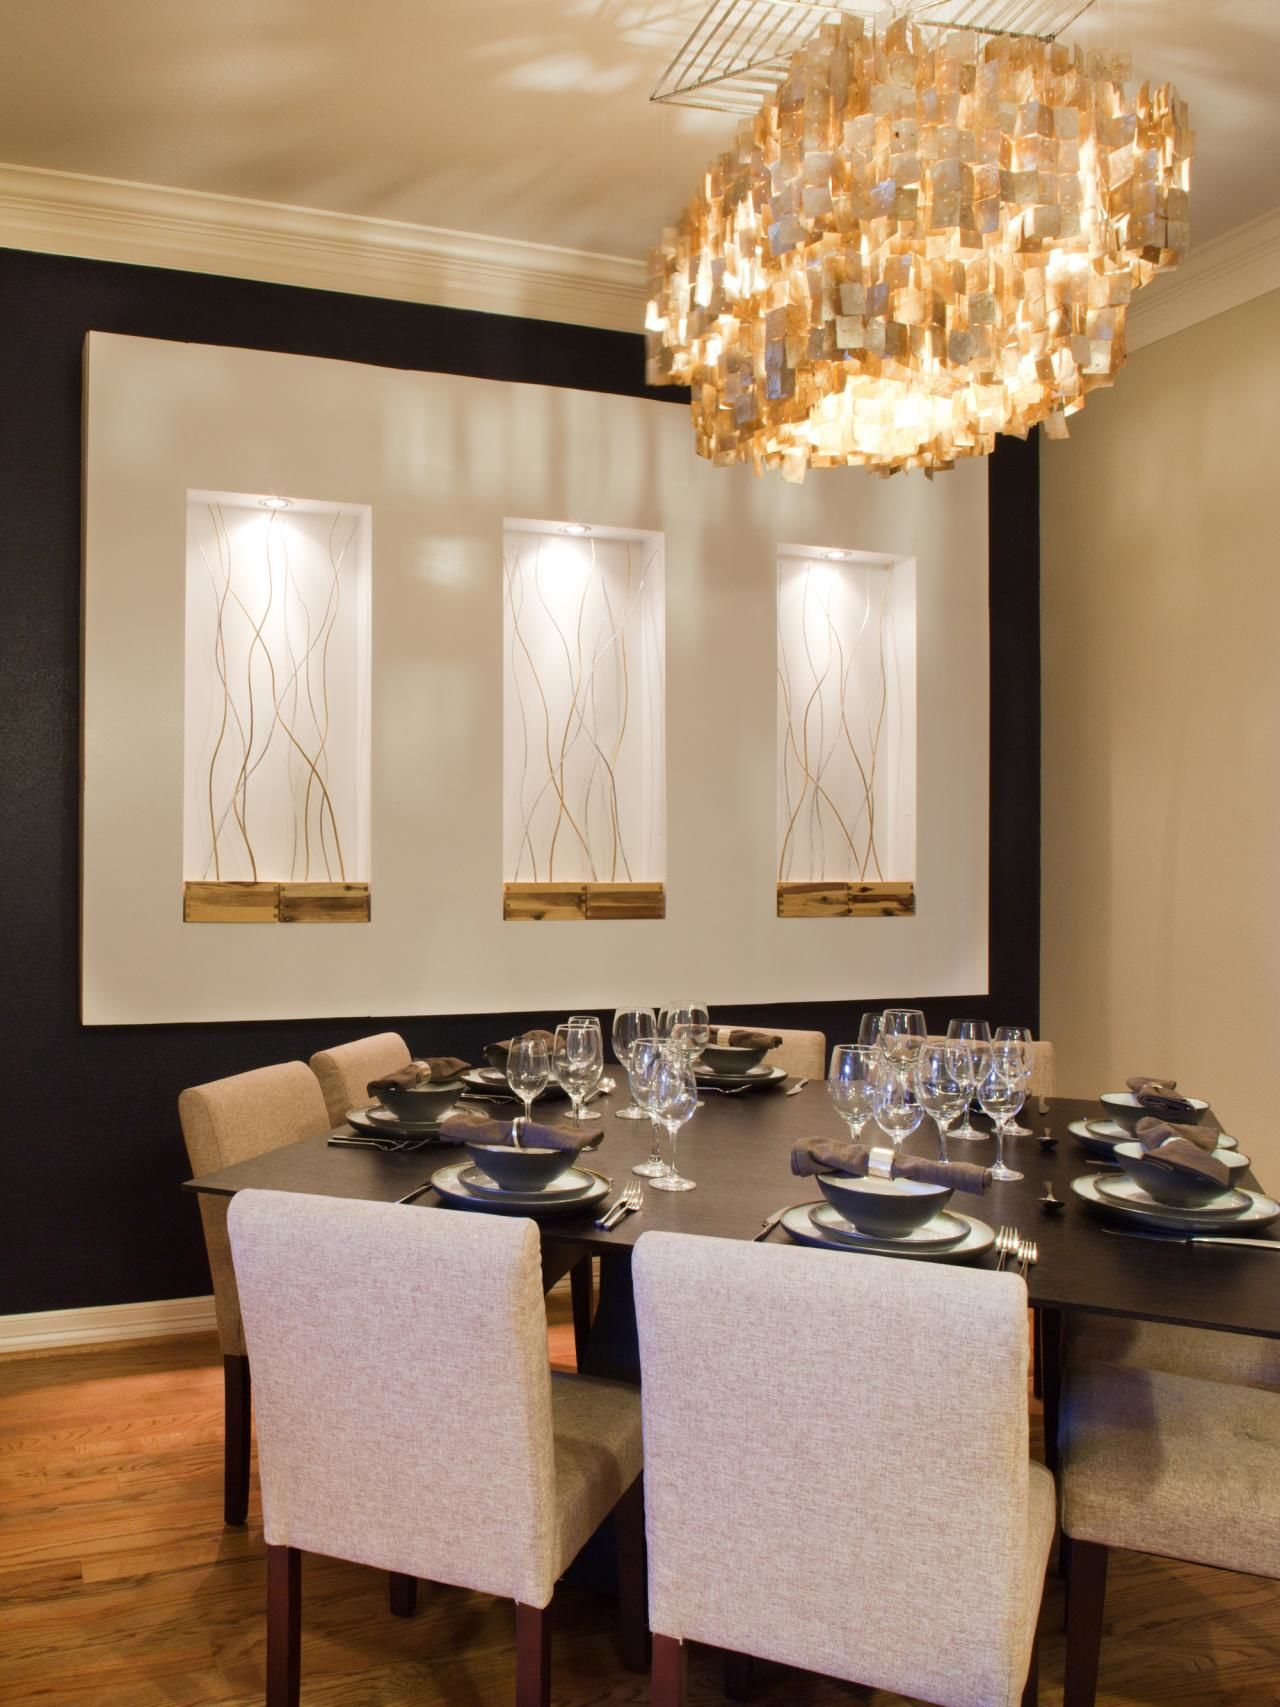 dining room How to Use Black Color to Create an Incredible Dining Room How to Use Black Color to Create an Incredible Dining Room5